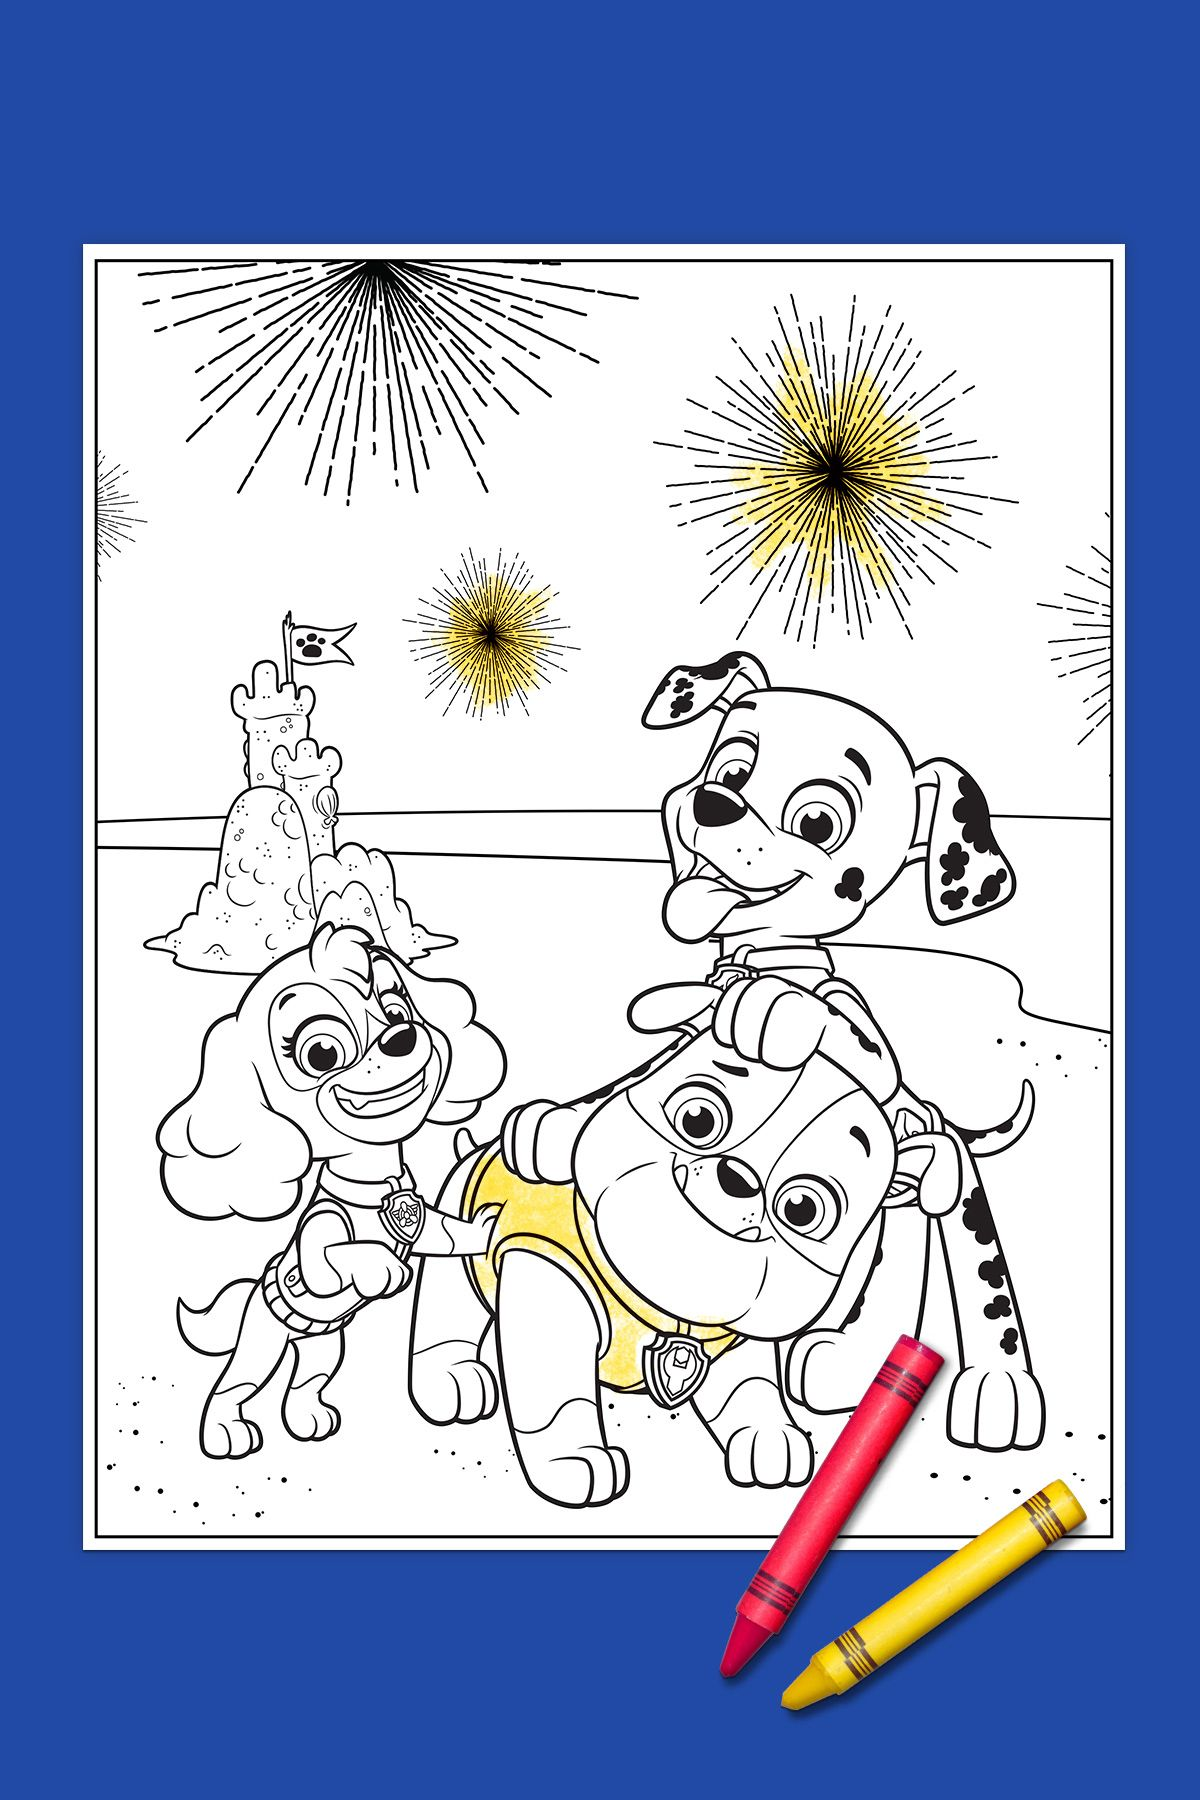 Your PAW Patrol 4th of July Coloring Page! | Paw patrol, Nick jr and ...